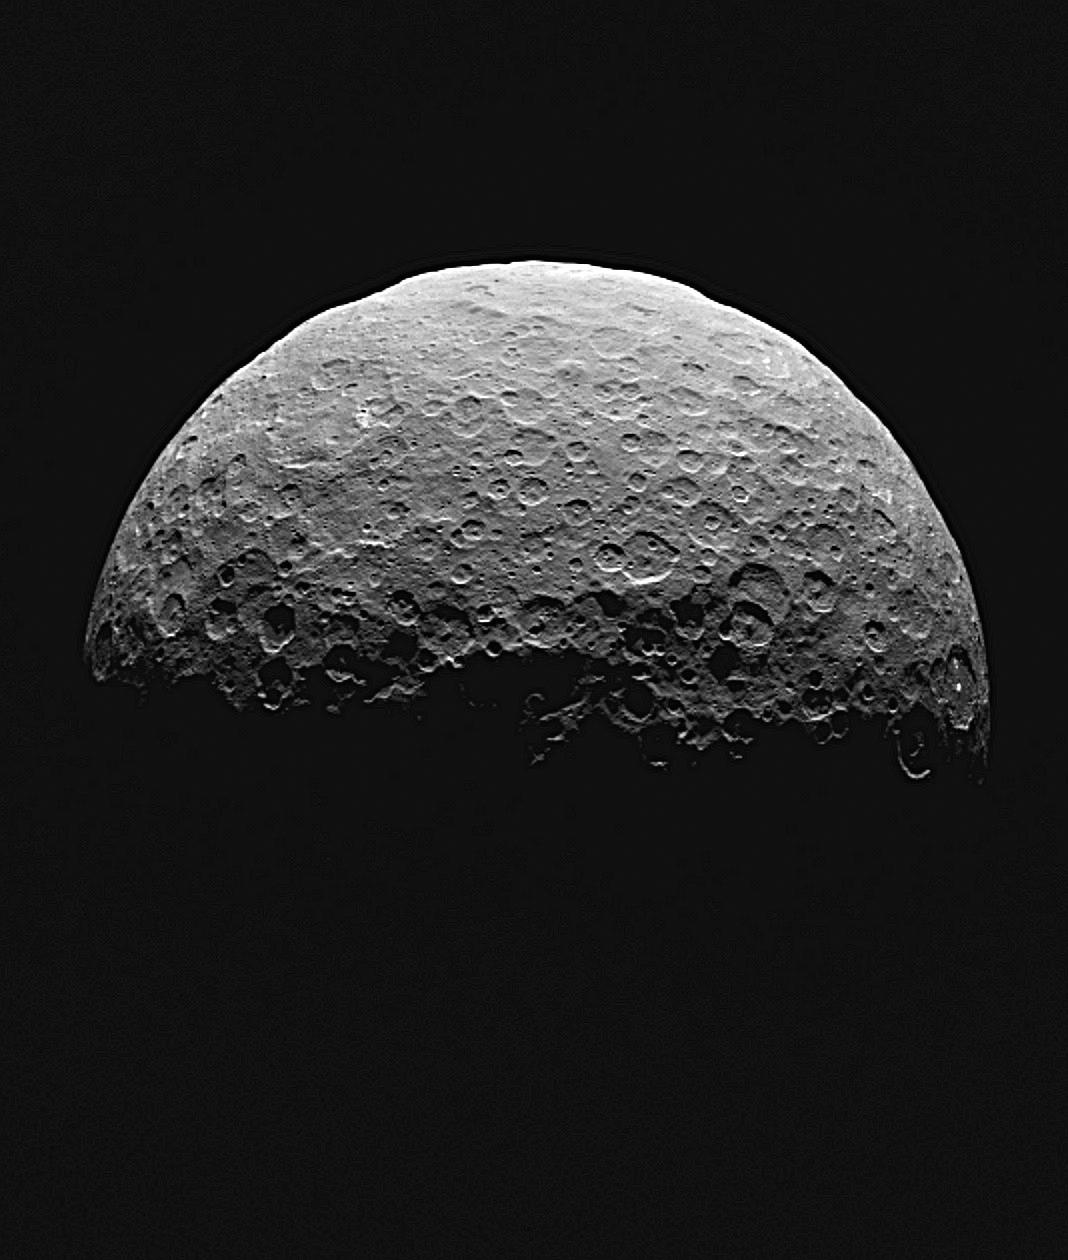 Mountains of Ceres